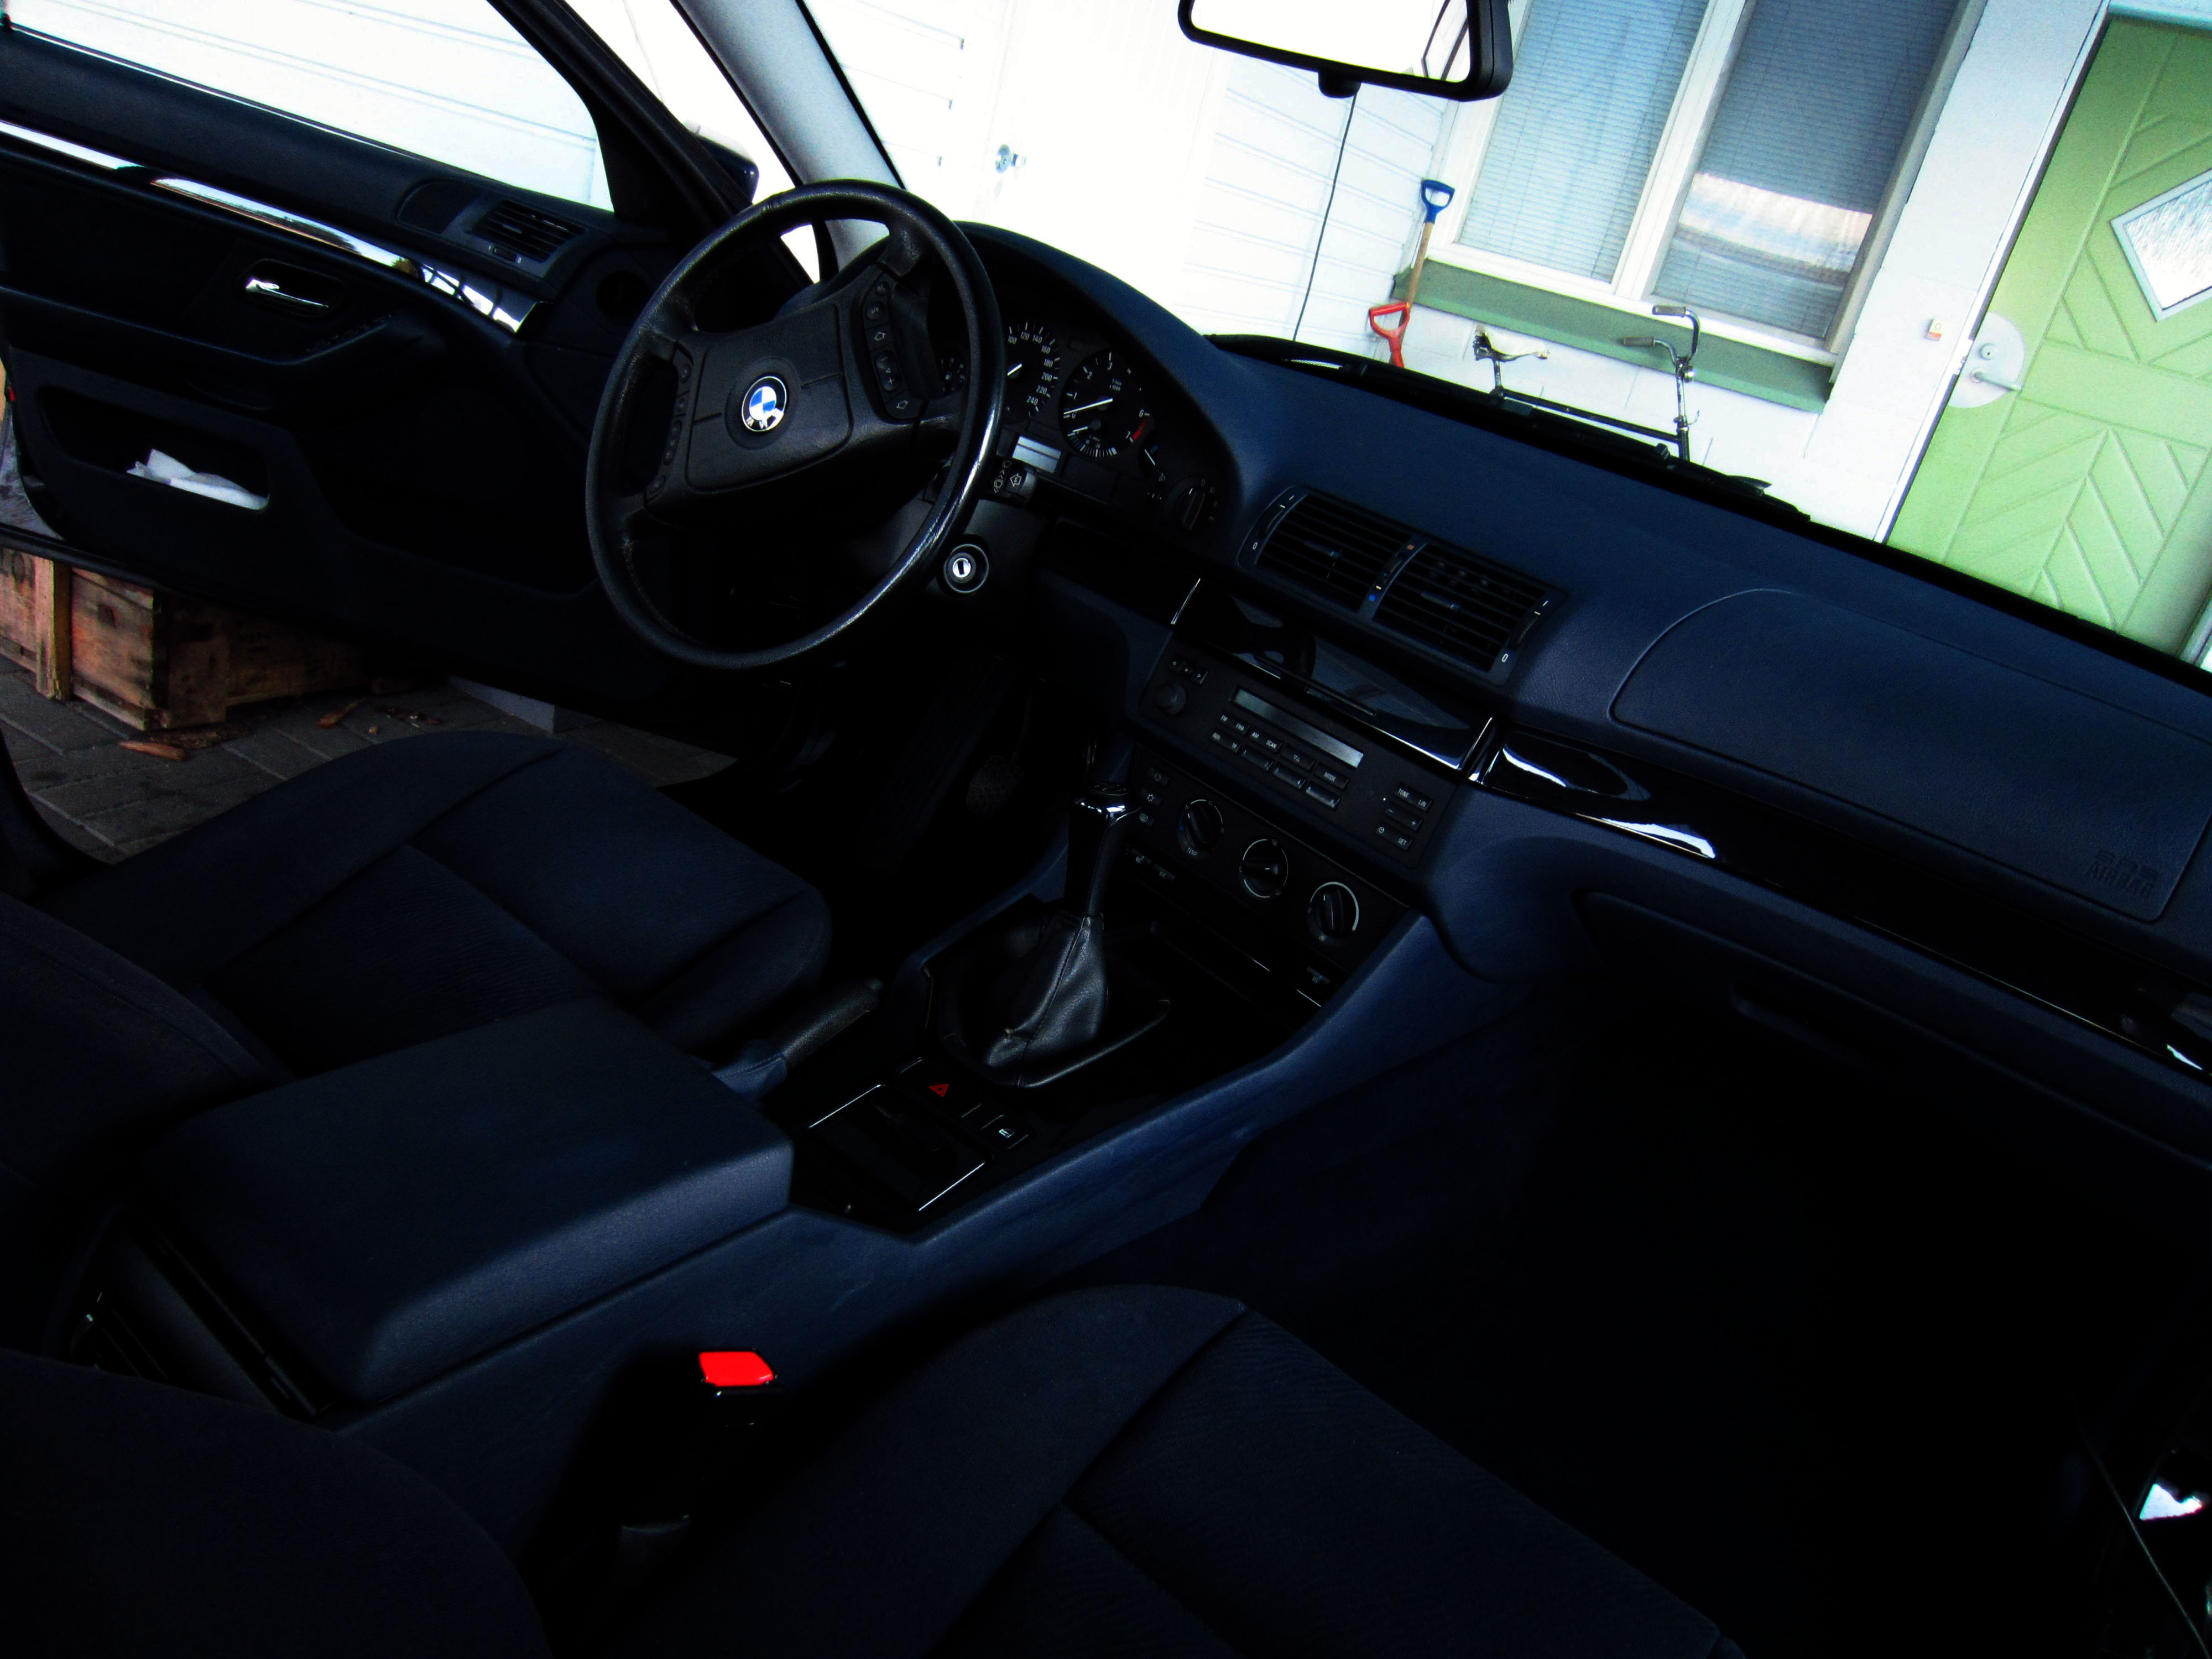 File Bmw E39 5 Series My1999 523i Interior With Cloth Seats Jpg Wikimedia Commons